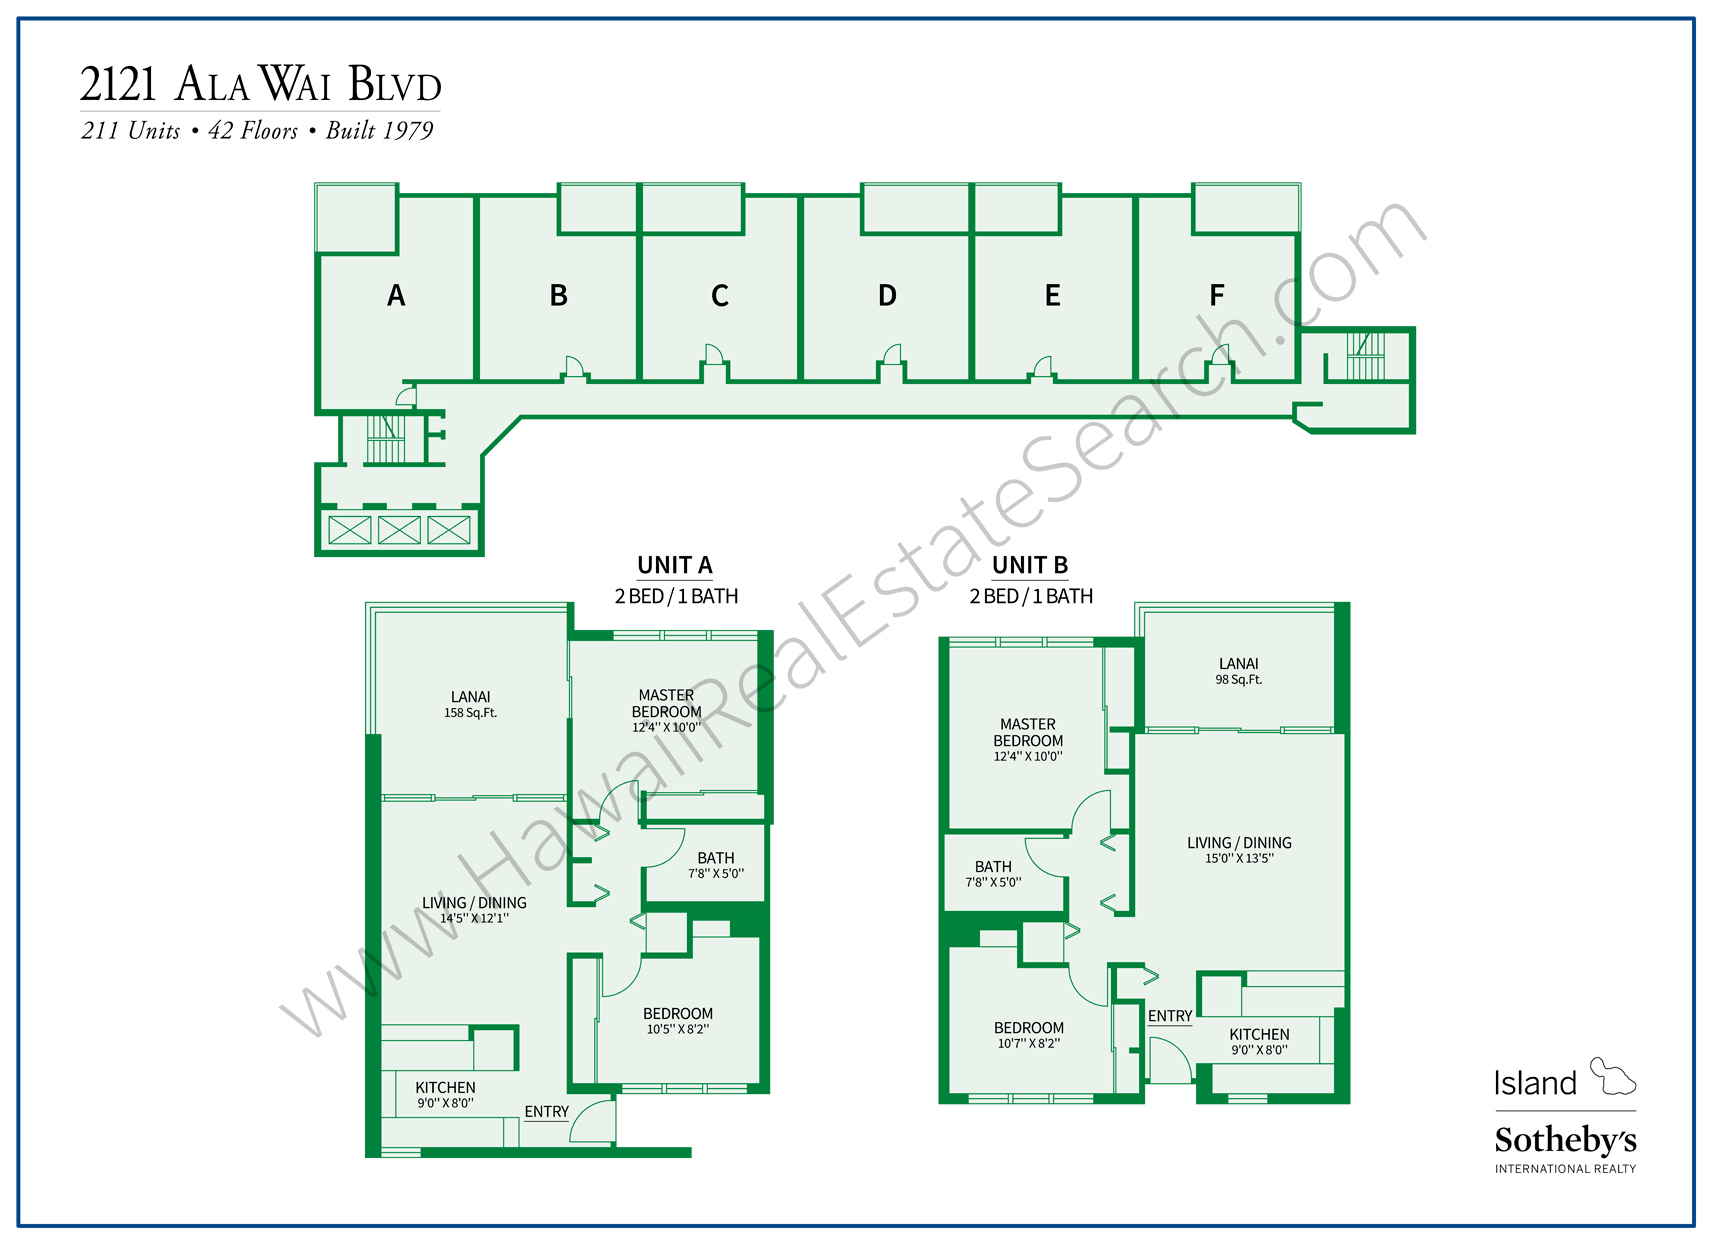 2121 Ala Wai Blvd Property Map and Floor Plans